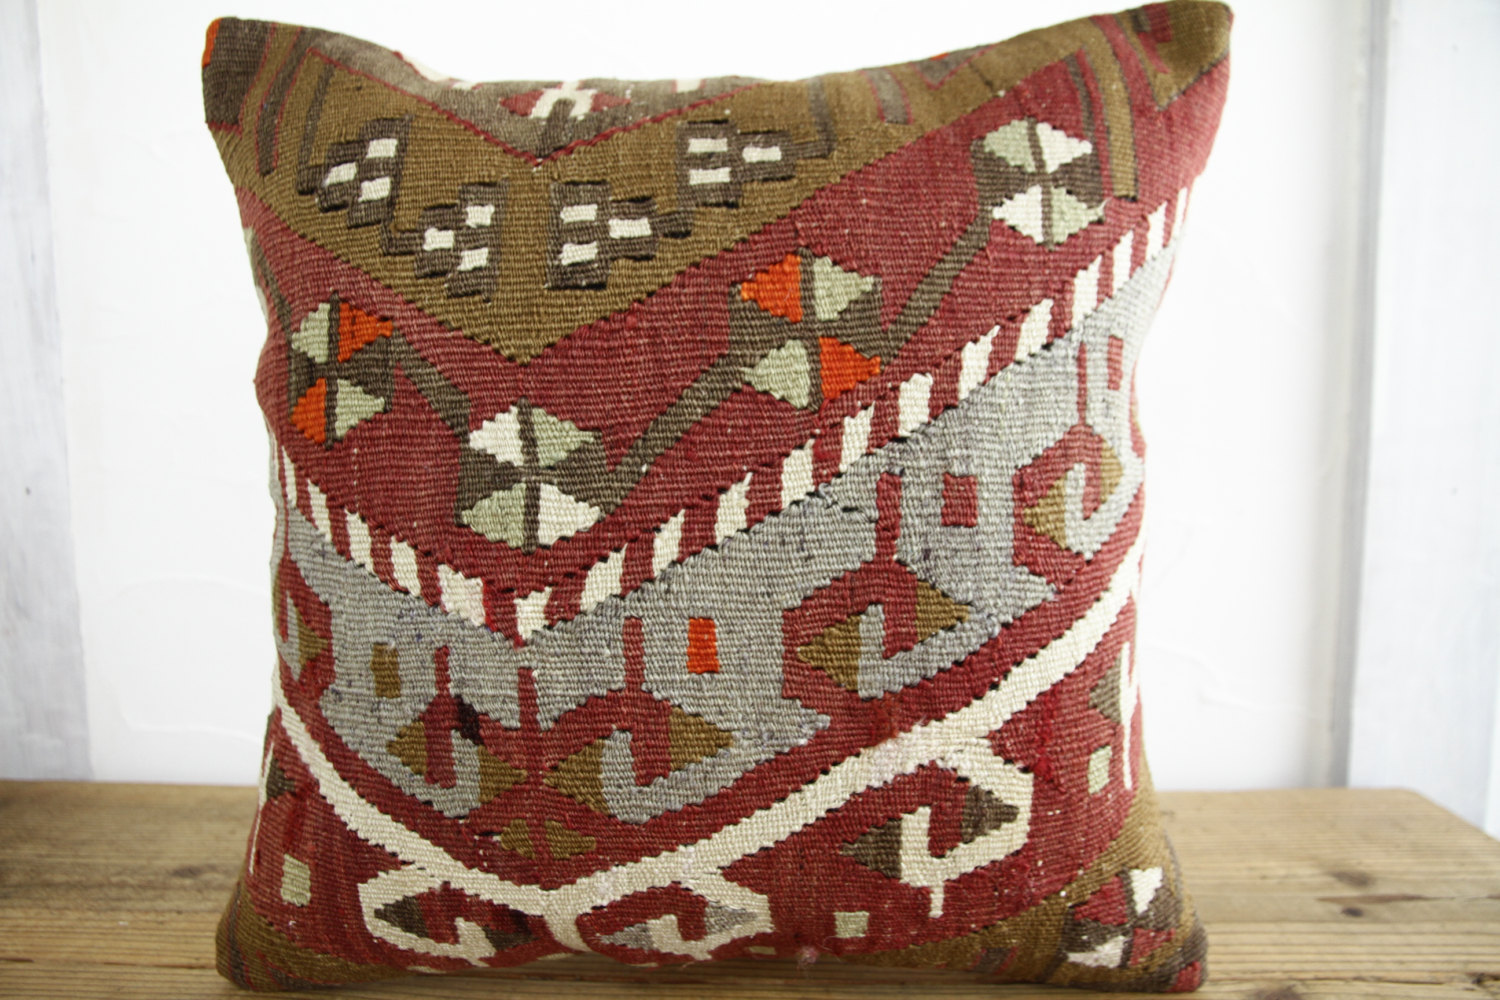 Kilim Pillows |18x18| Decorative Pillows | 352 | Accent Pillows, Kilim cushion